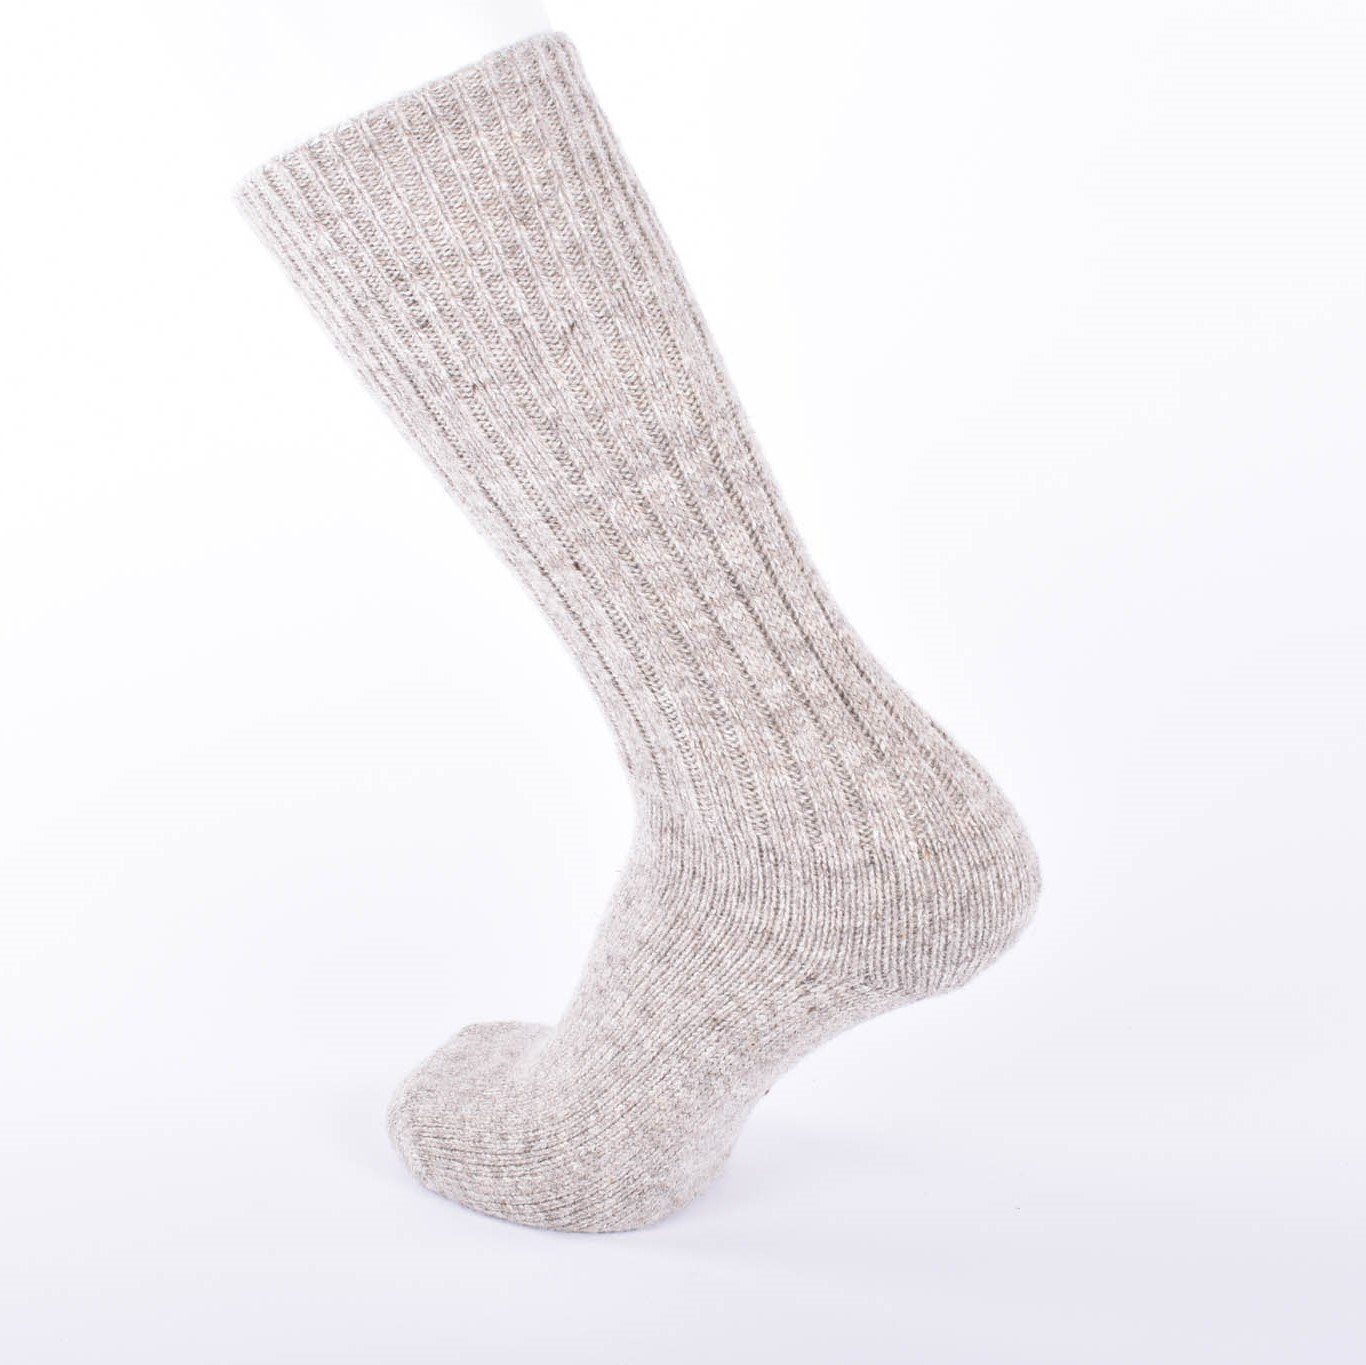 730f304319f7 Duray 100% Wool Sock - Unisex and 29 similar items